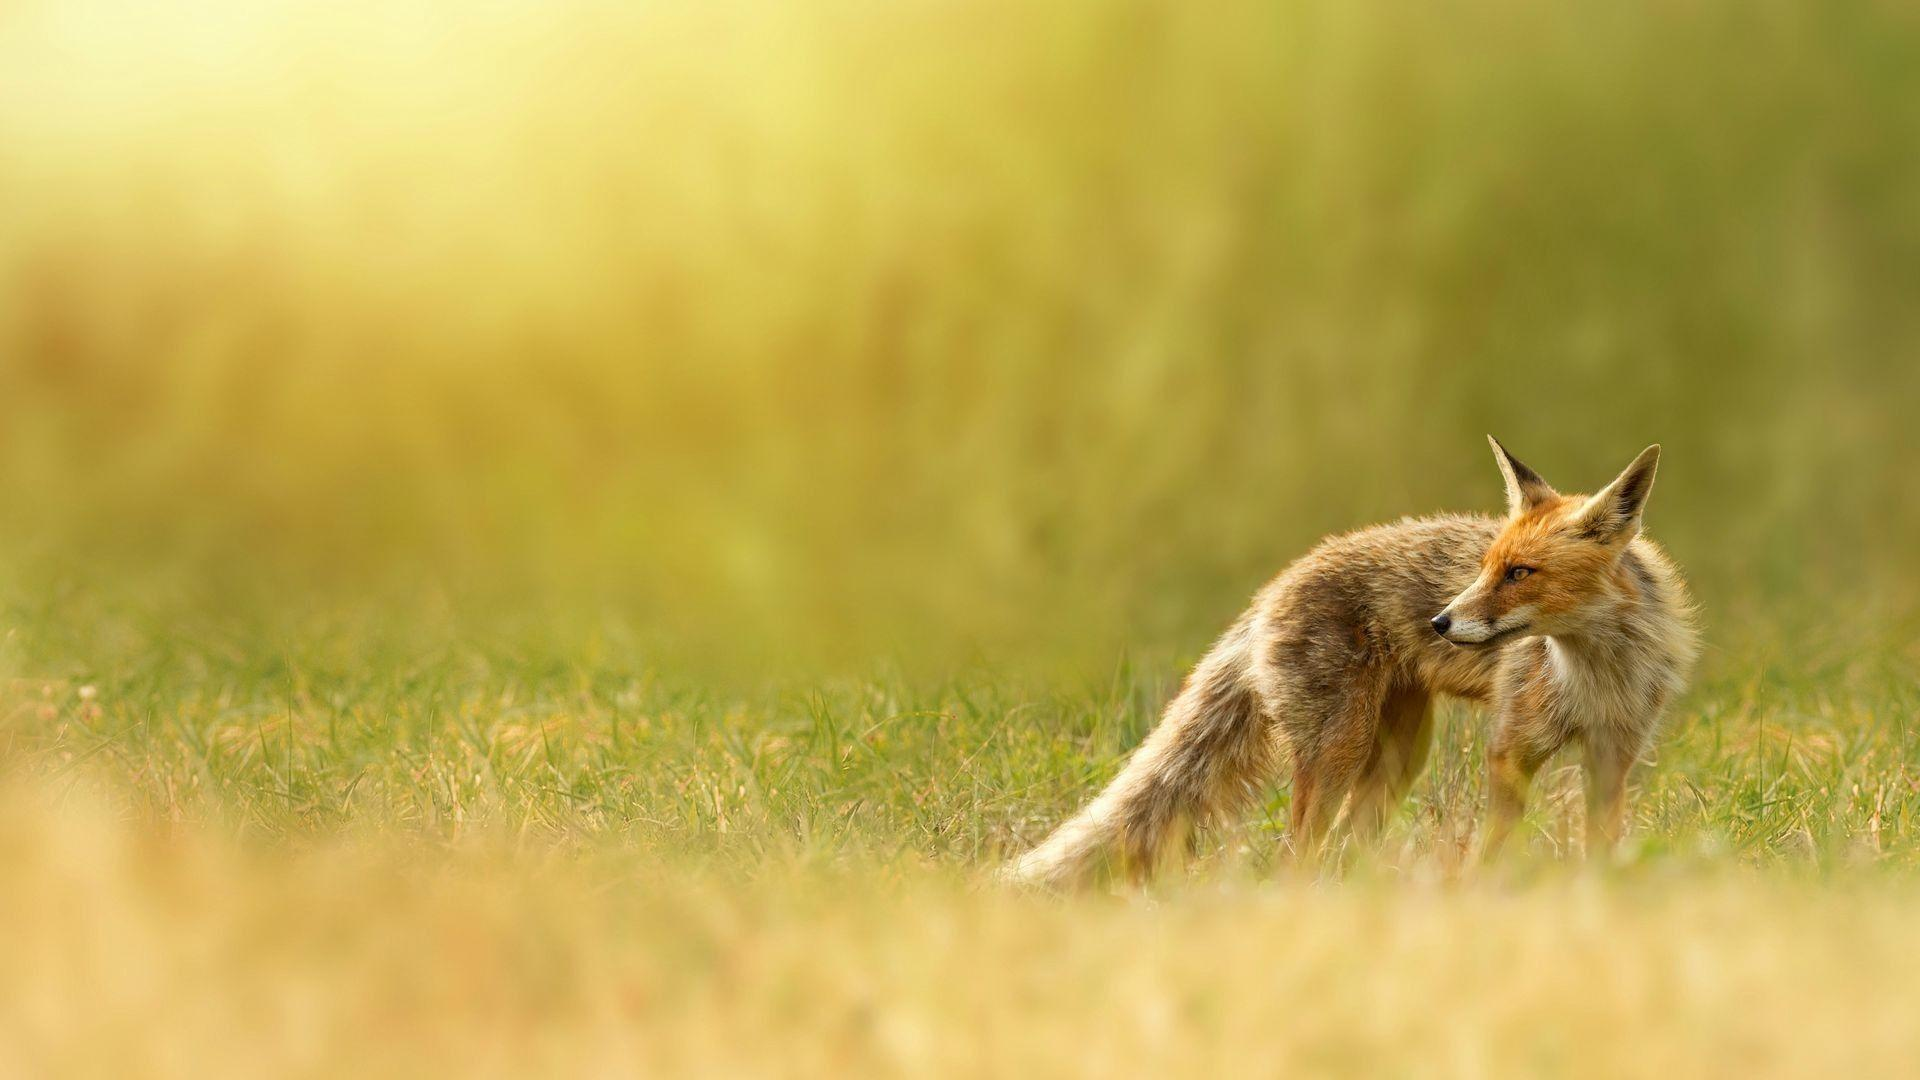 red fox hd wallpapers - photo #16